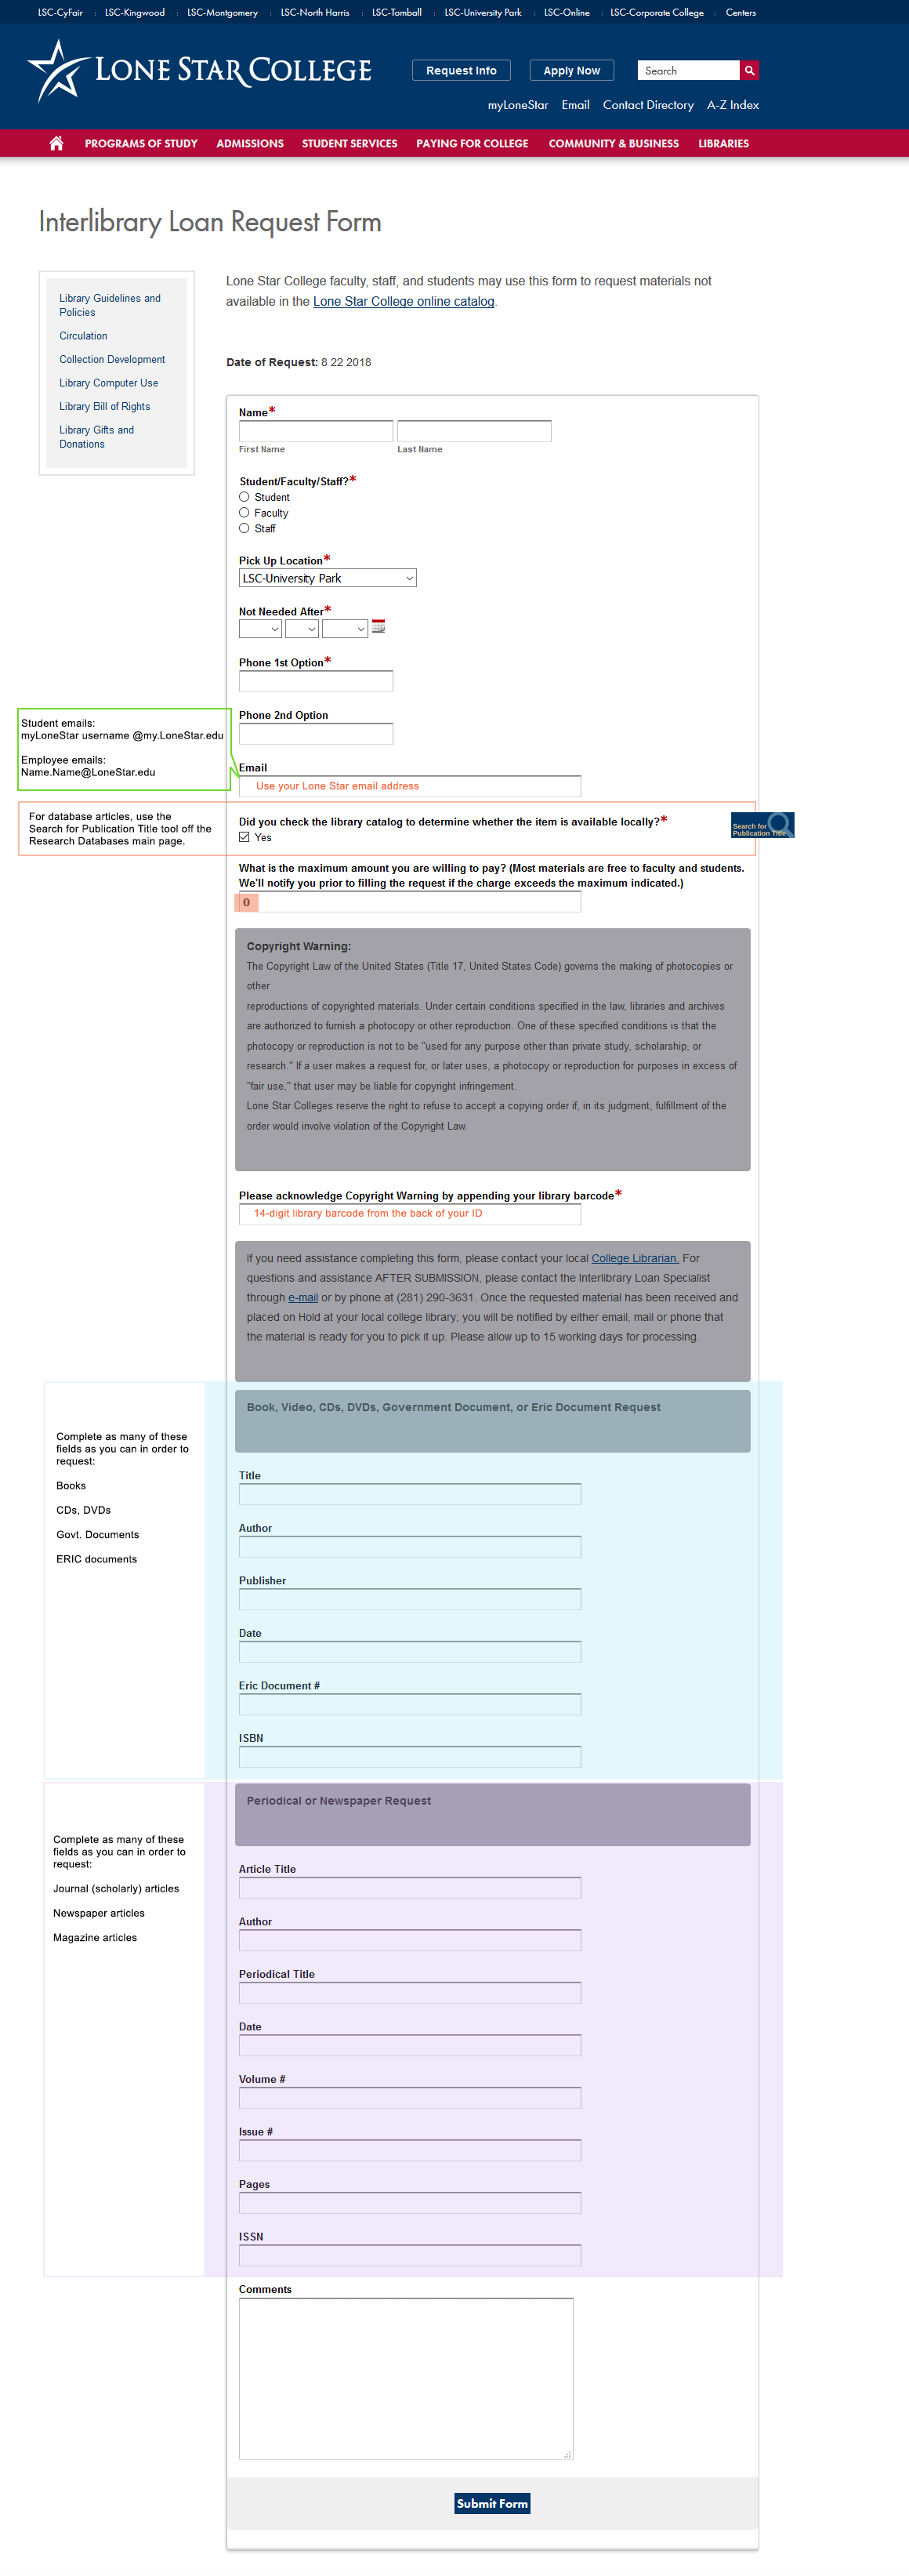 Annotated screenshot of the online inter-library loan form